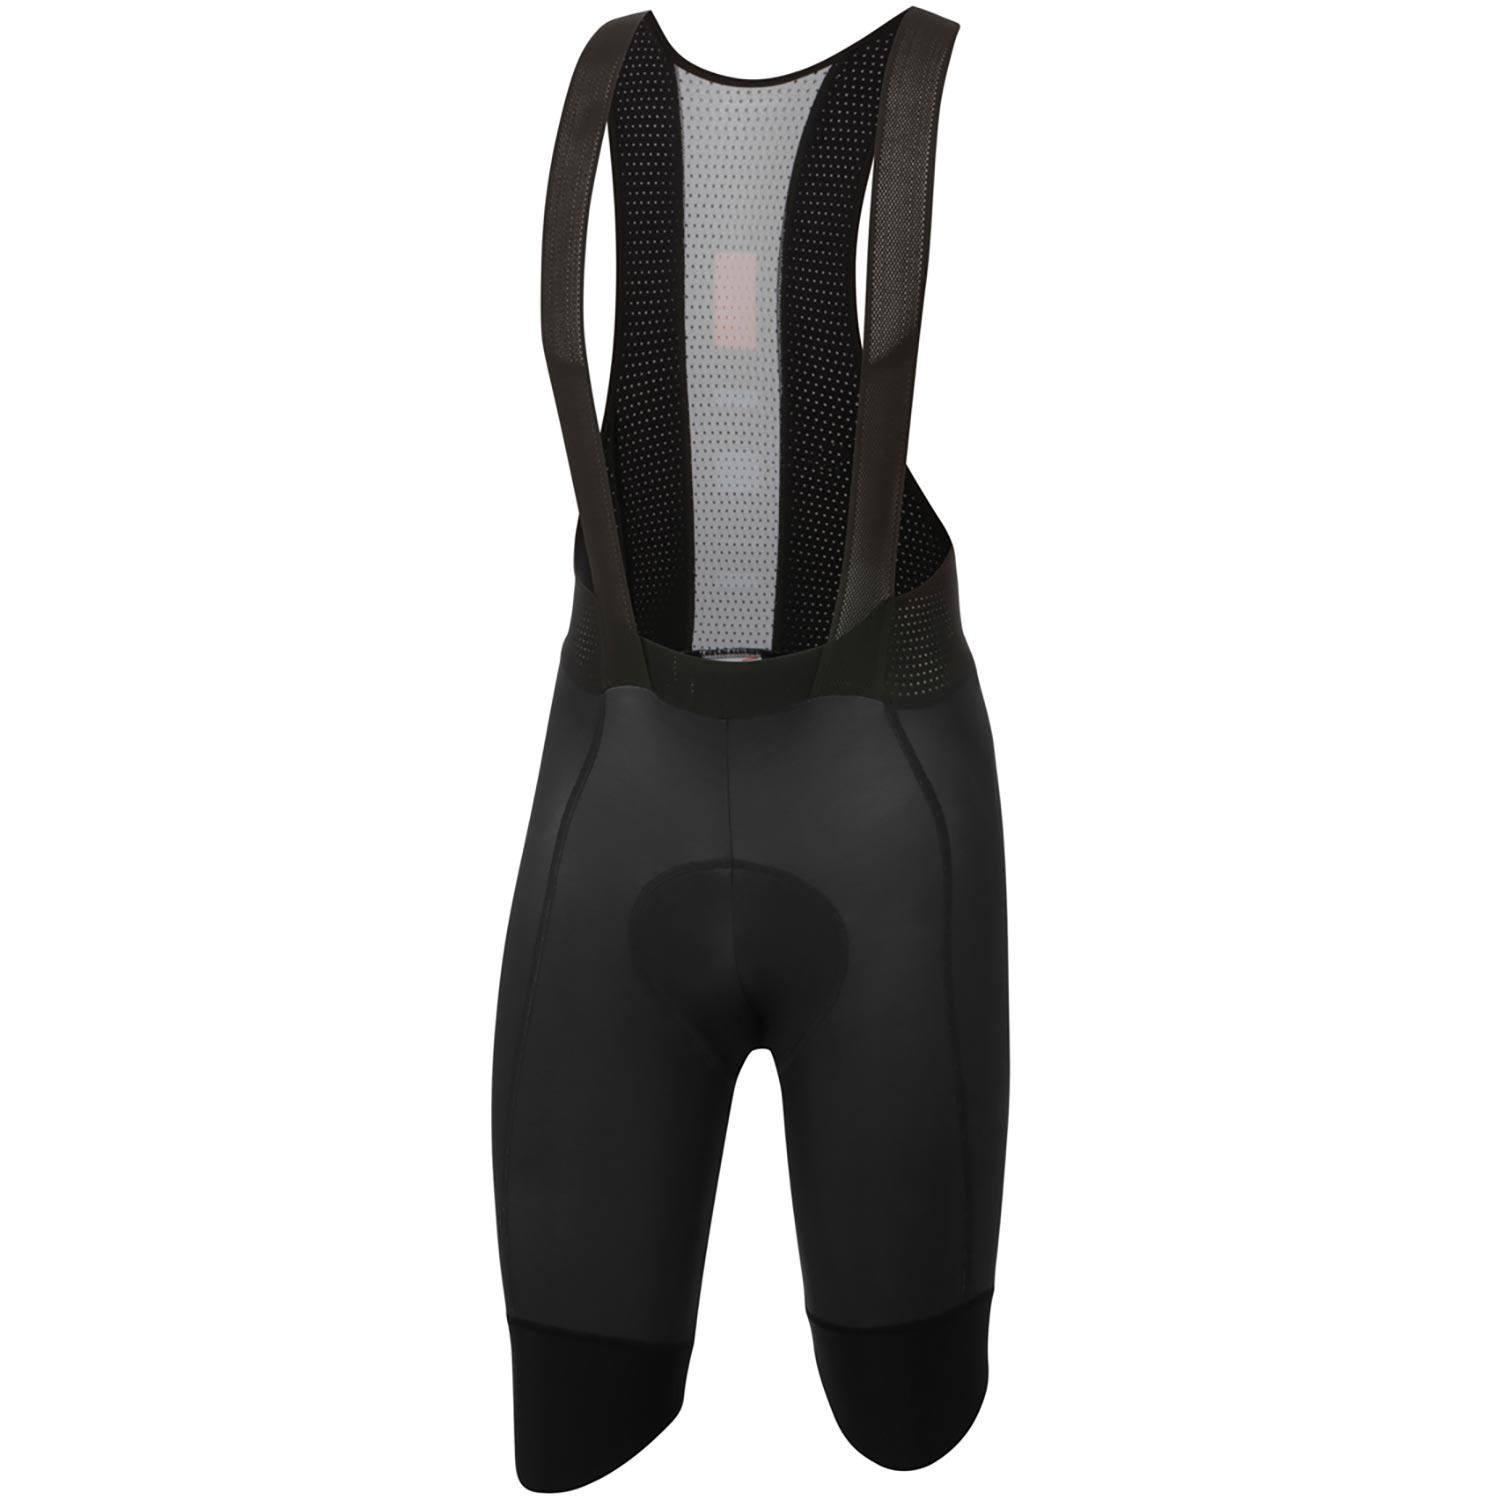 Sportful-Sportful BodyFit Pro Thermal Bib Shorts-Black-S-SF205040022-saddleback-elite-performance-cycling